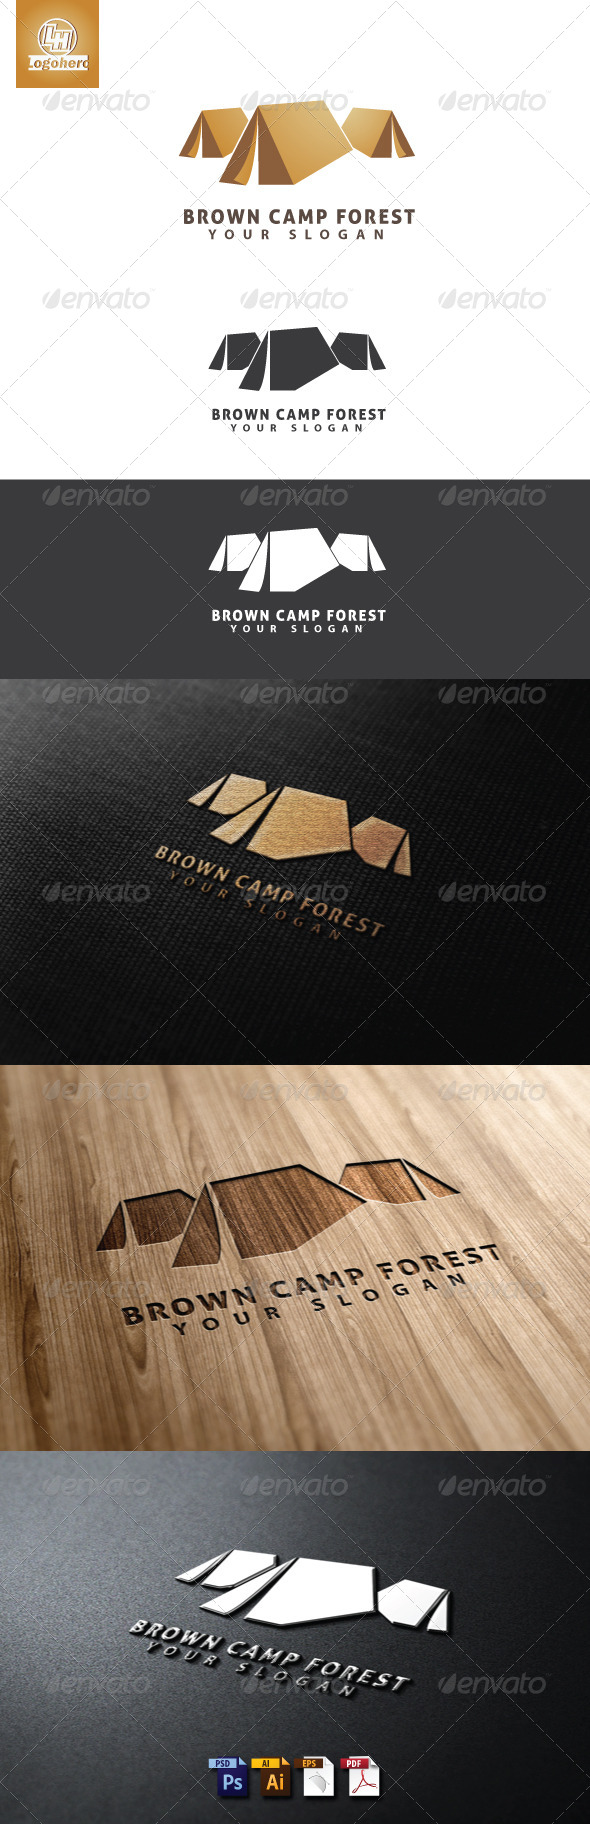 Brown Camp Forest Logo Template - Buildings Logo Templates